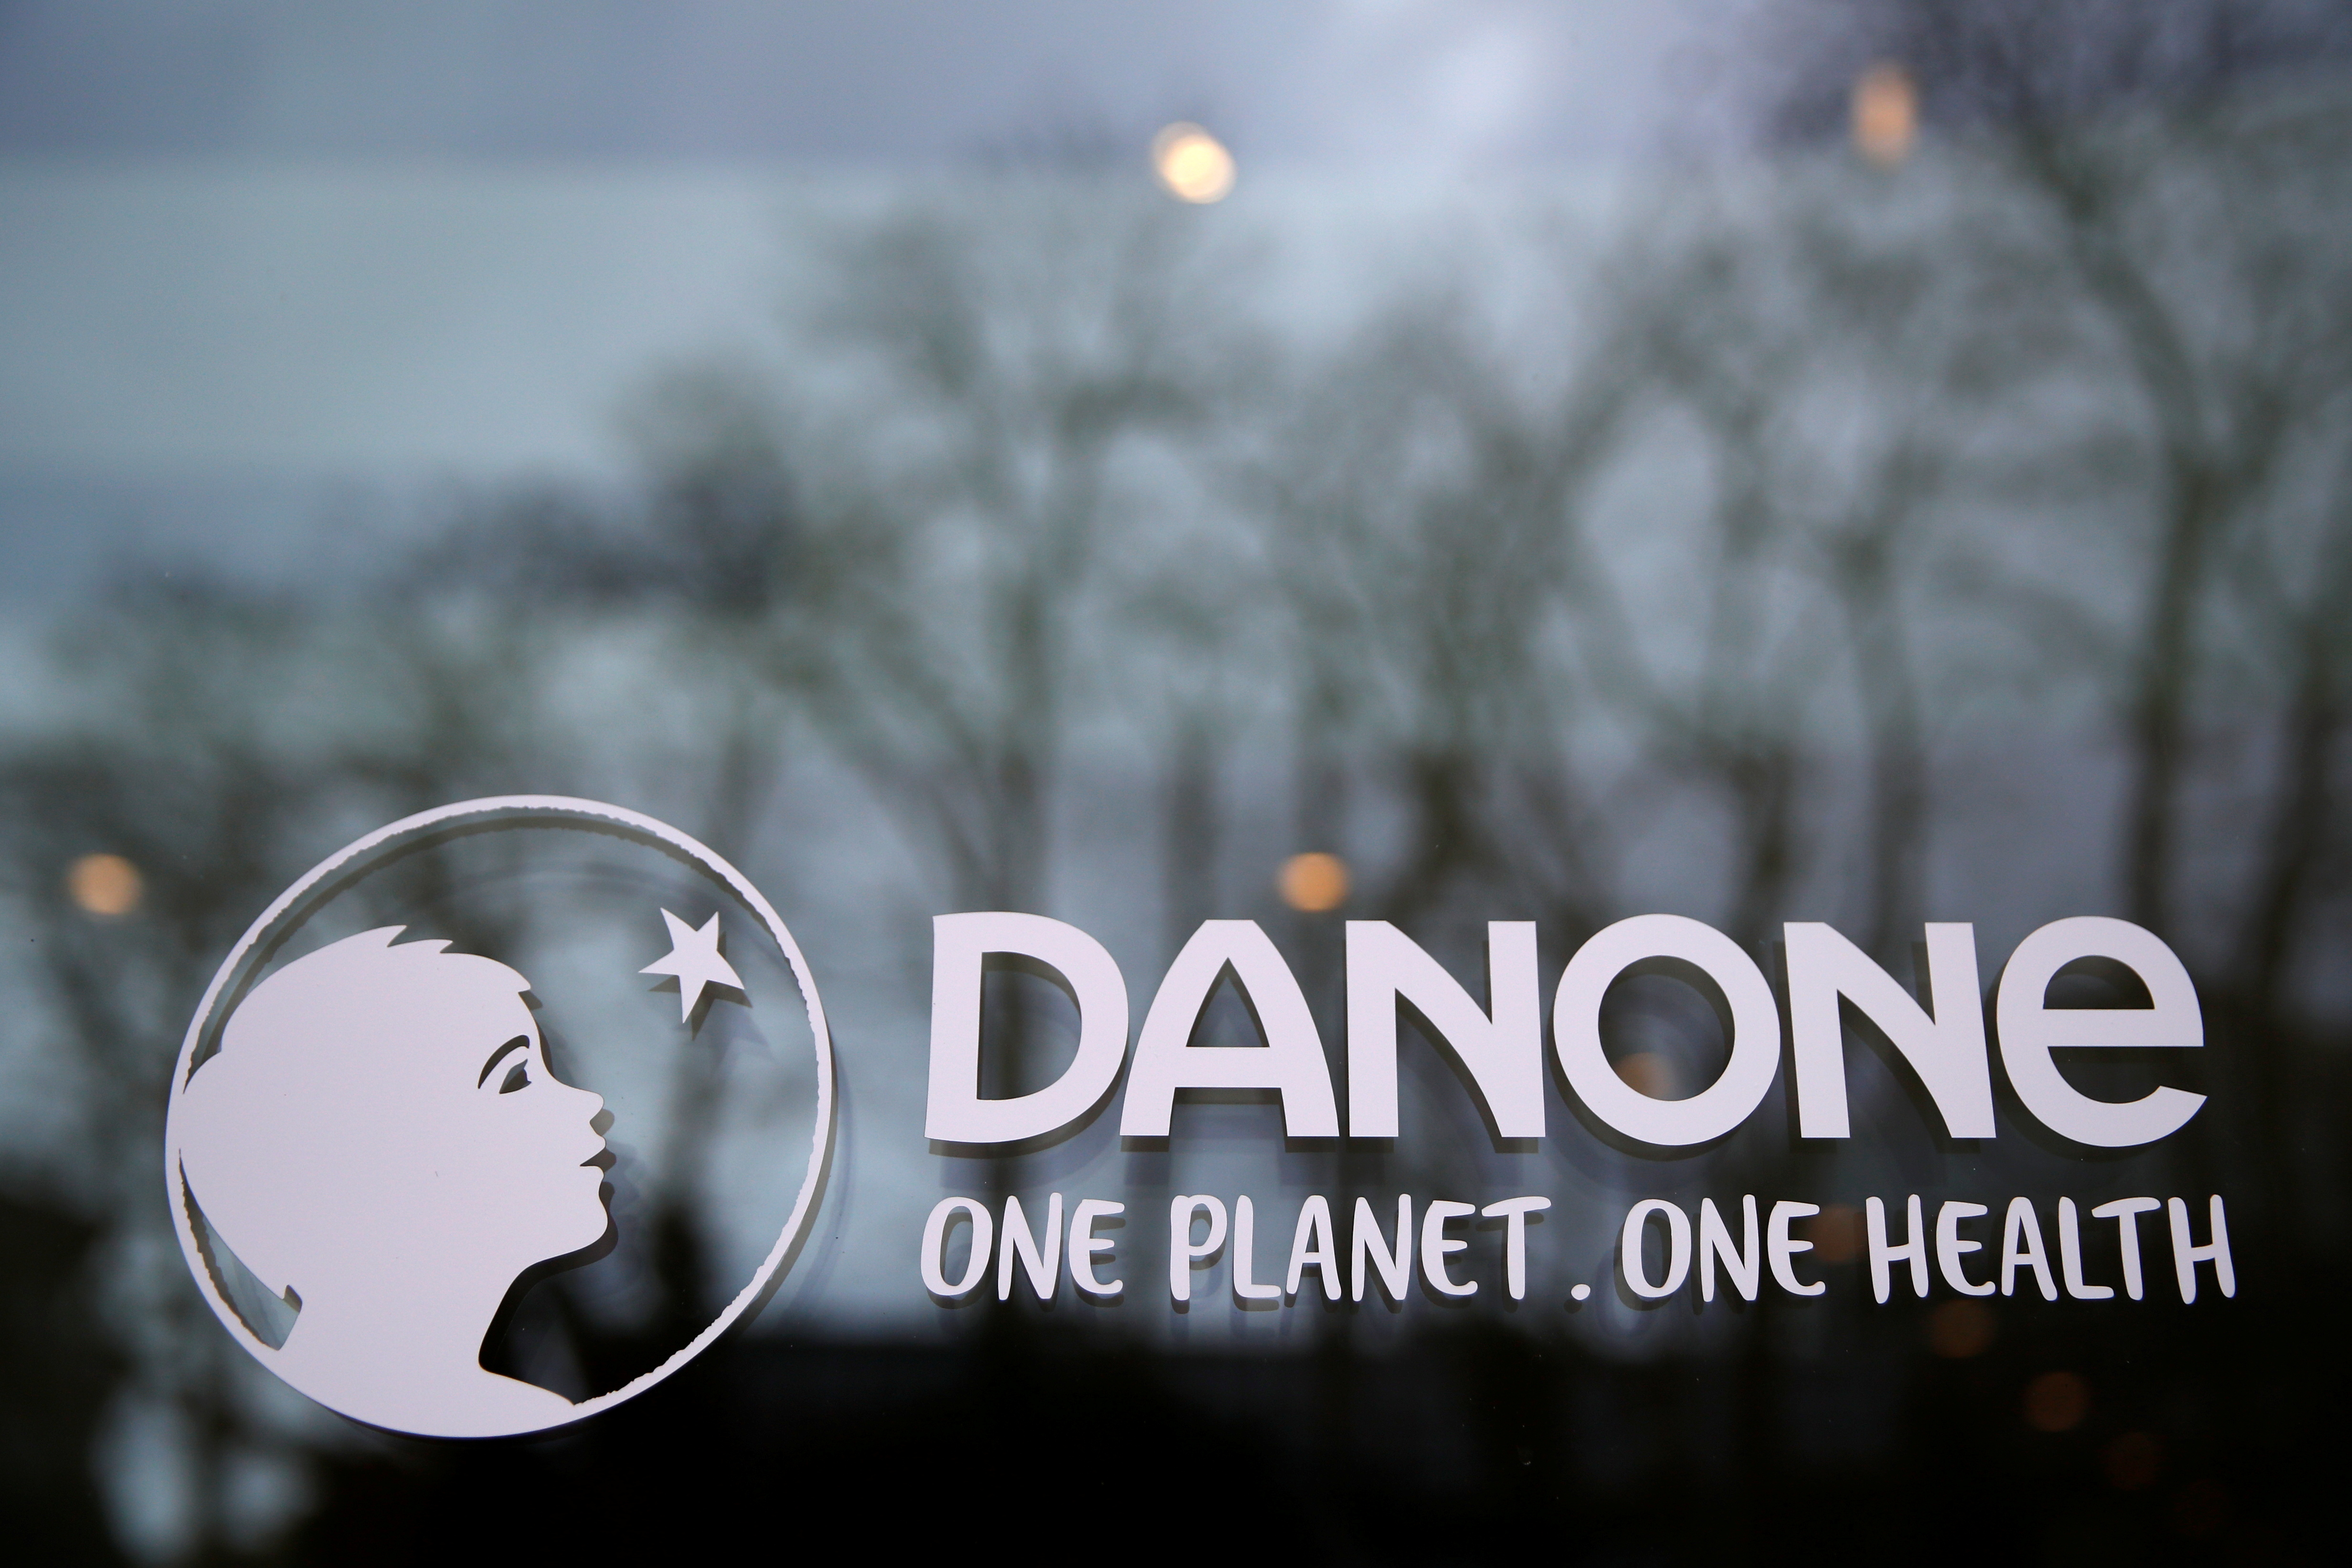 French food group Danone logo is seen at the company headquarters in Rueil-Malmaison near Paris, France, February 18, 2021. REUTERS/Gonzalo Fuentes